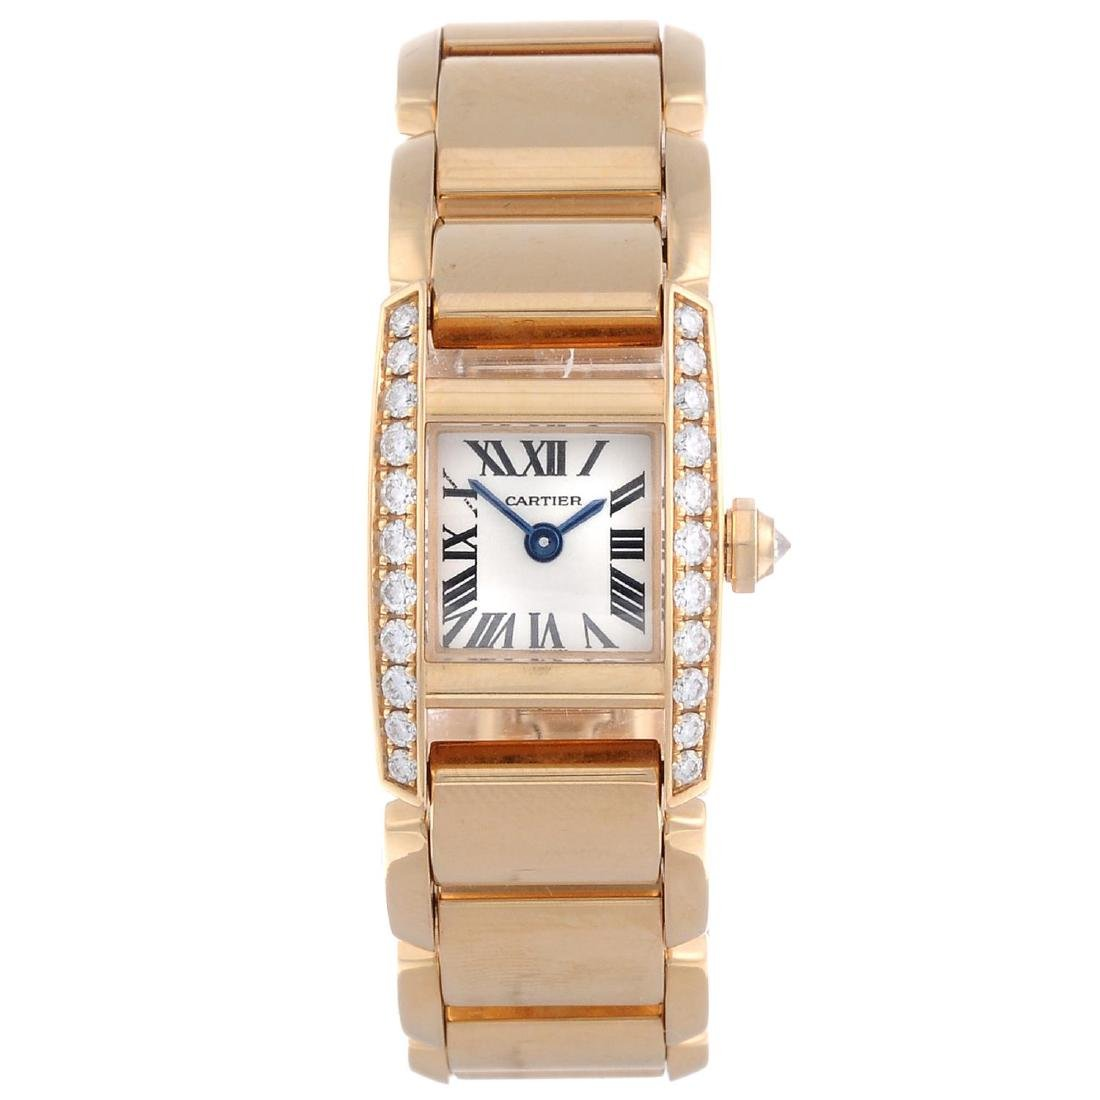 CARTIER - a Tankissime bracelet watch. 18ct rose gold